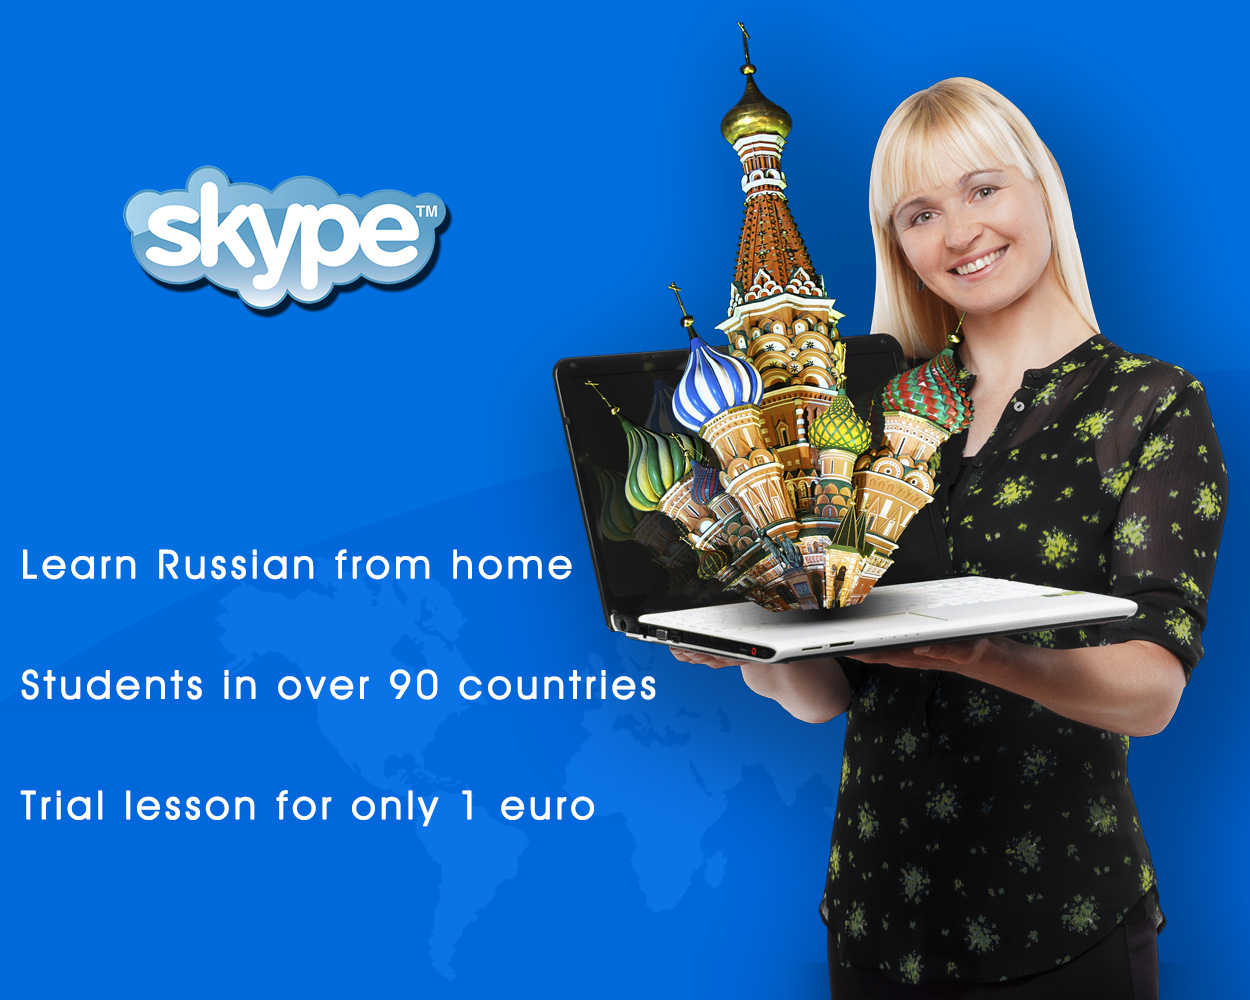 One-to-one Russian lessons